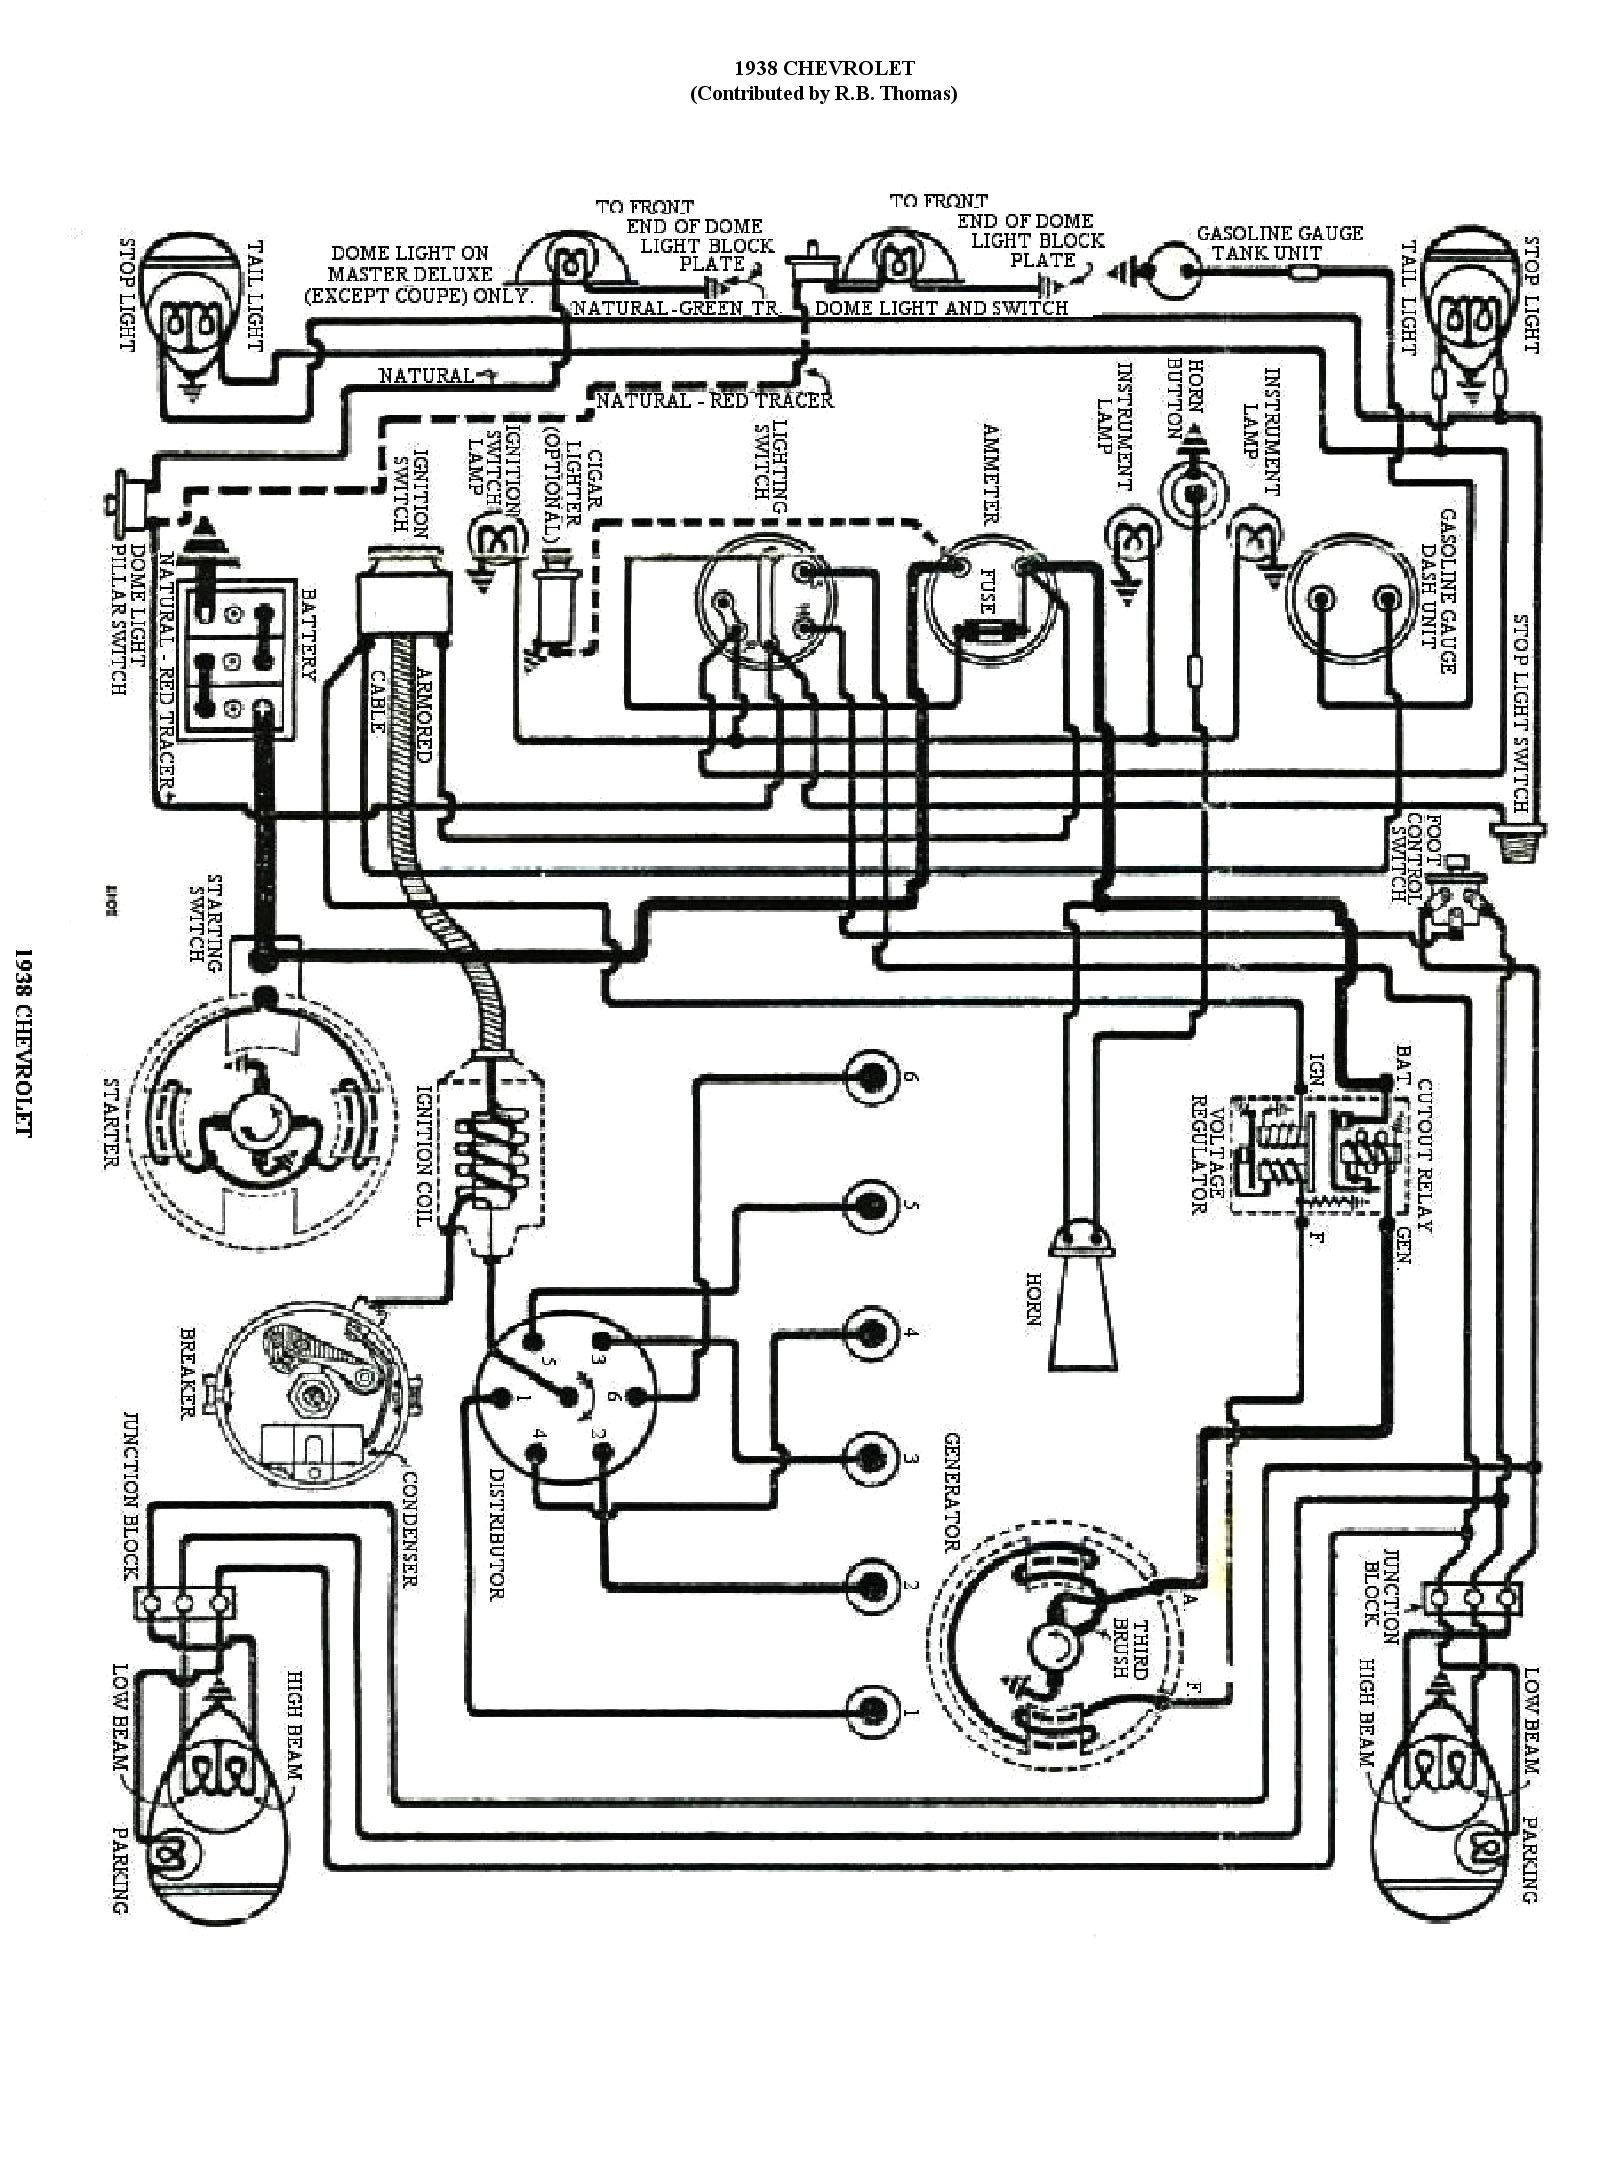 38wiring chevy wiring diagrams 6 volt wiring harness kits for old cars at panicattacktreatment.co